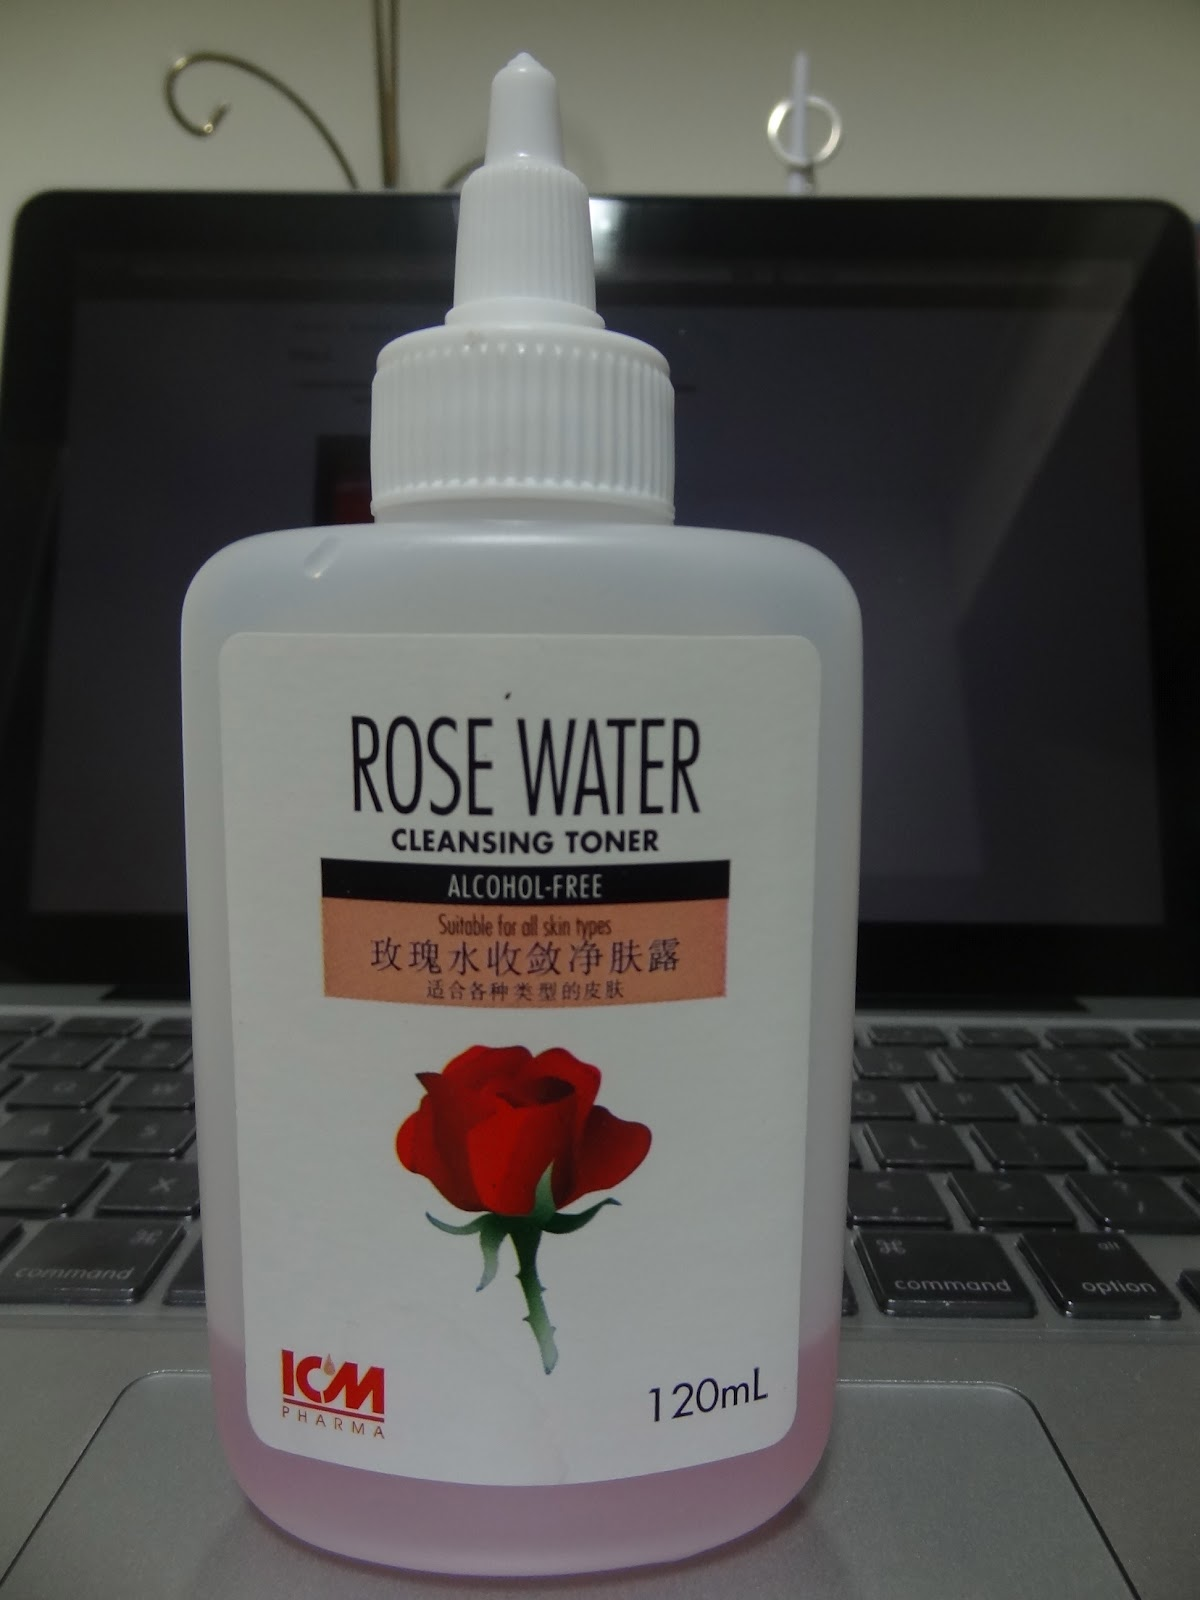 Where to buy rose water in singapore